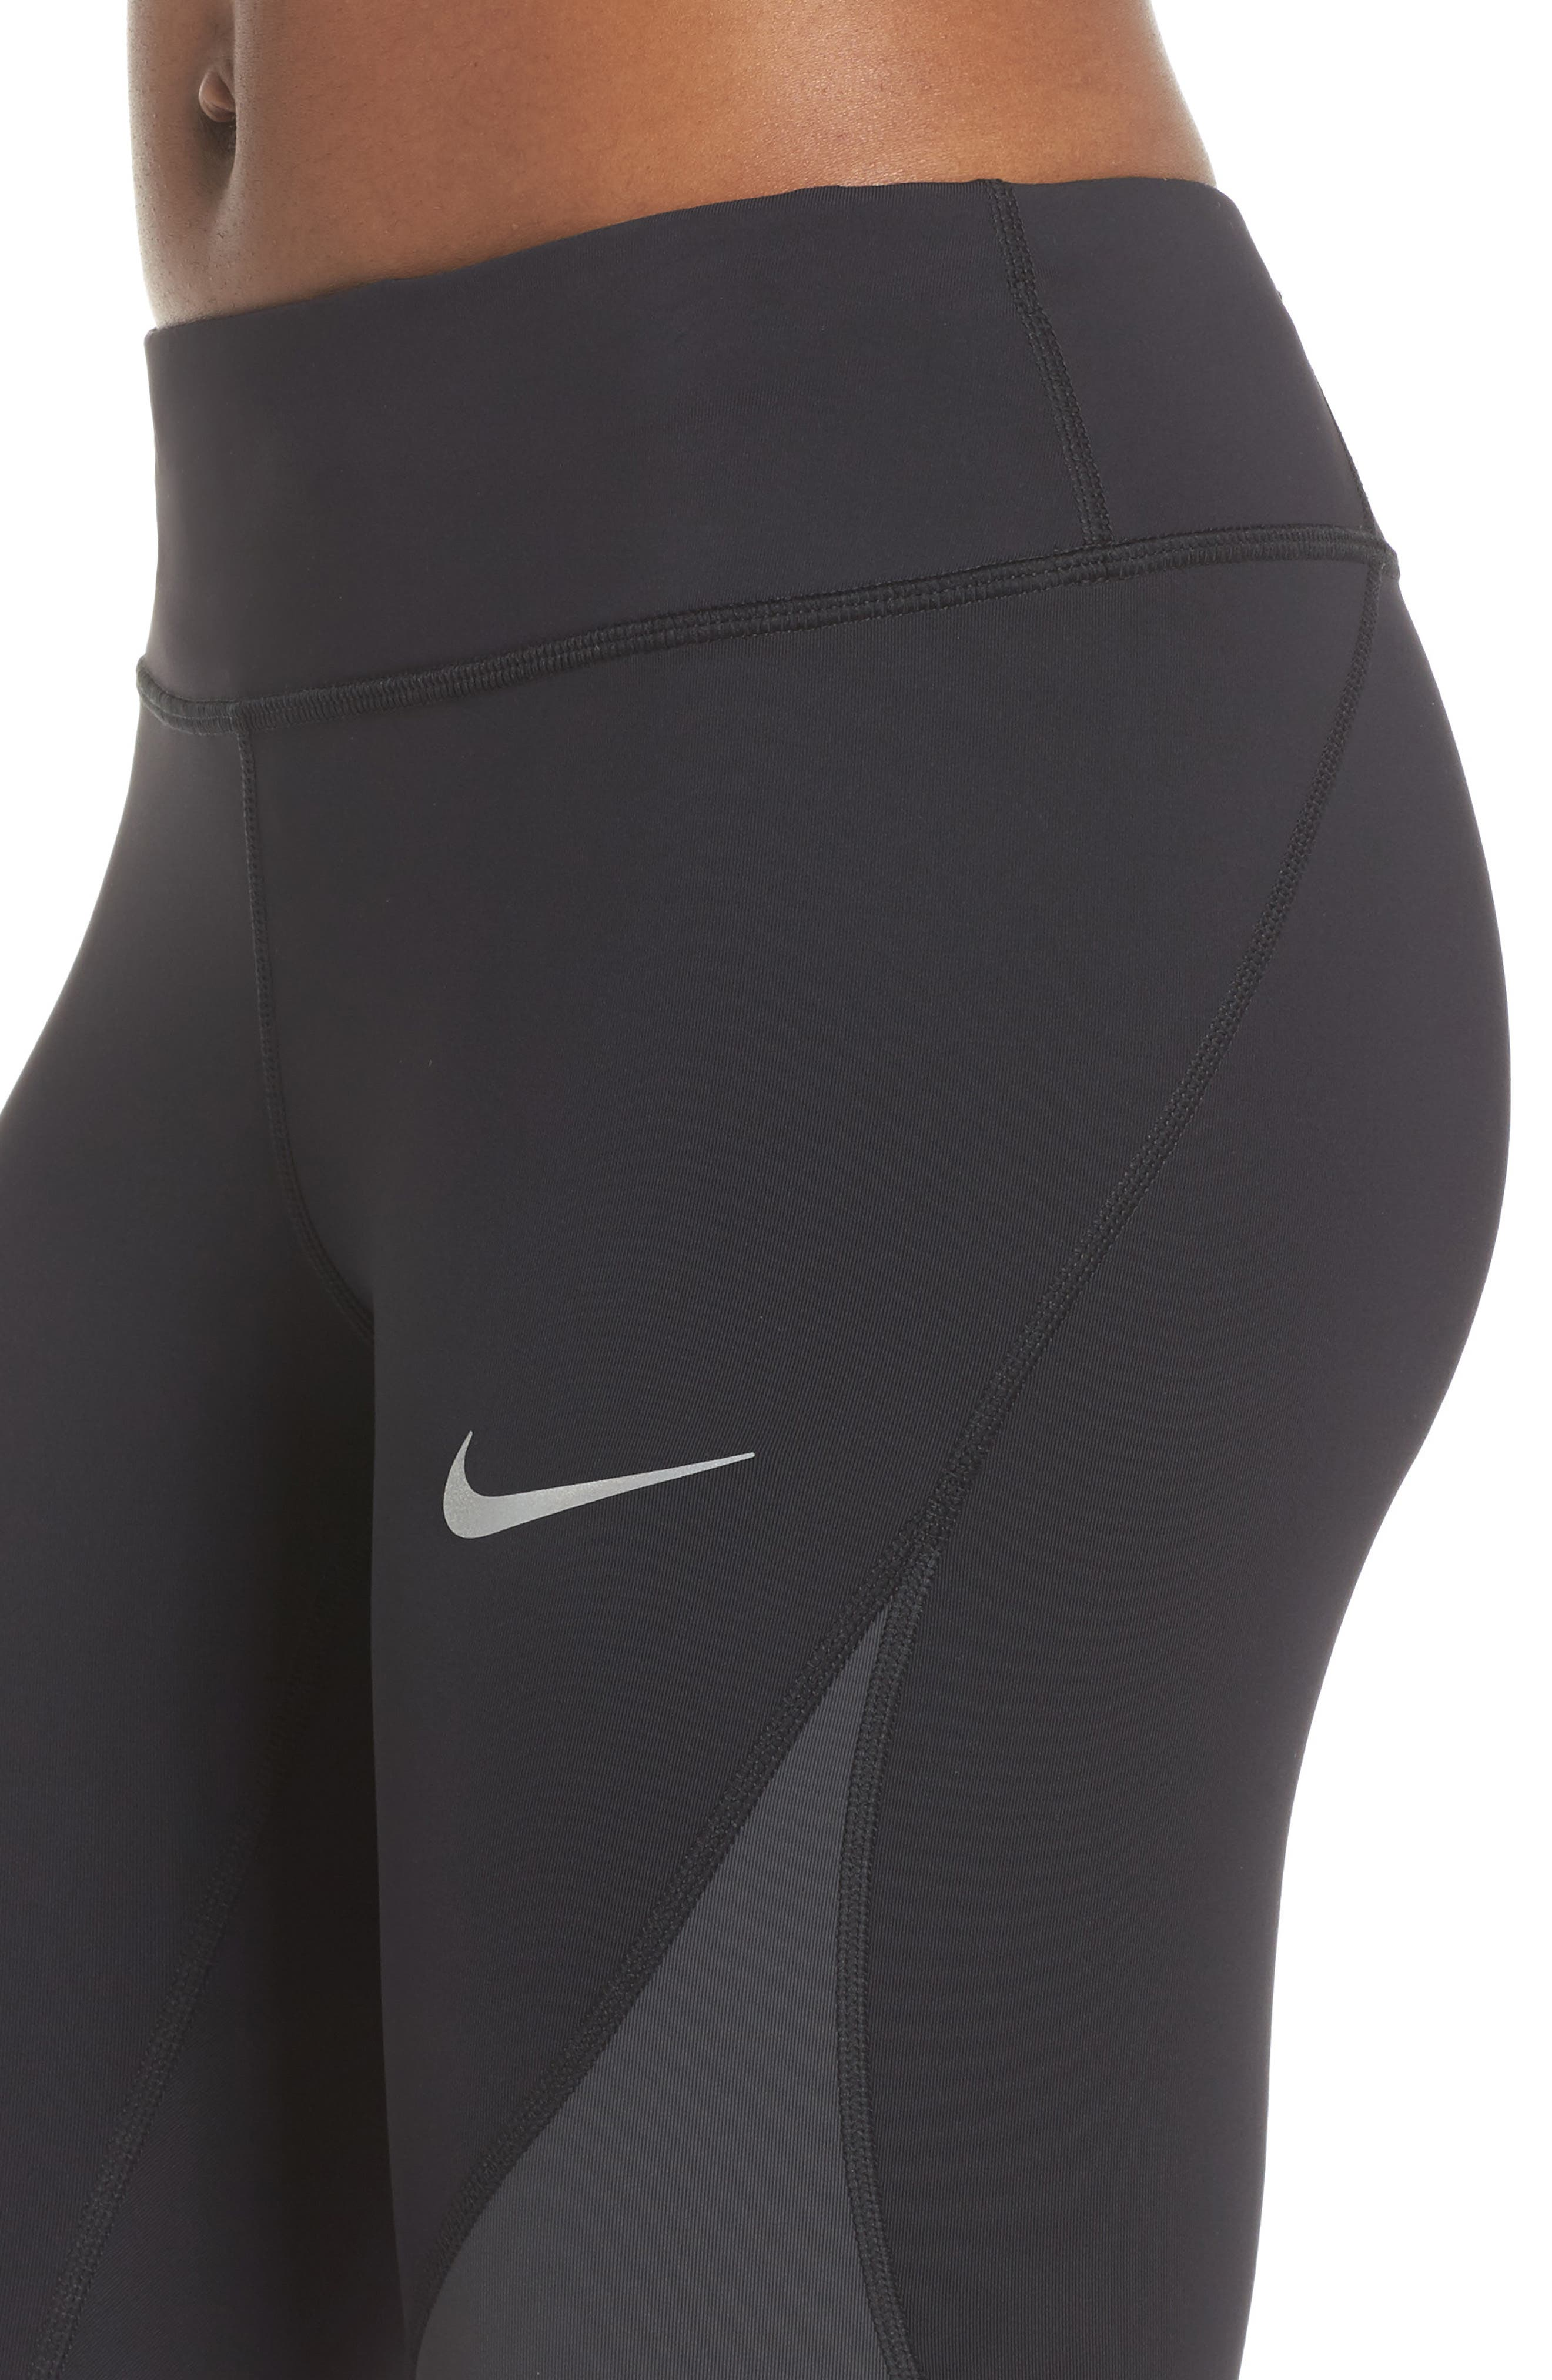 Power Epic Lux Colorblock Running Tights,                             Alternate thumbnail 4, color,                             Black/ Anthracite/ White